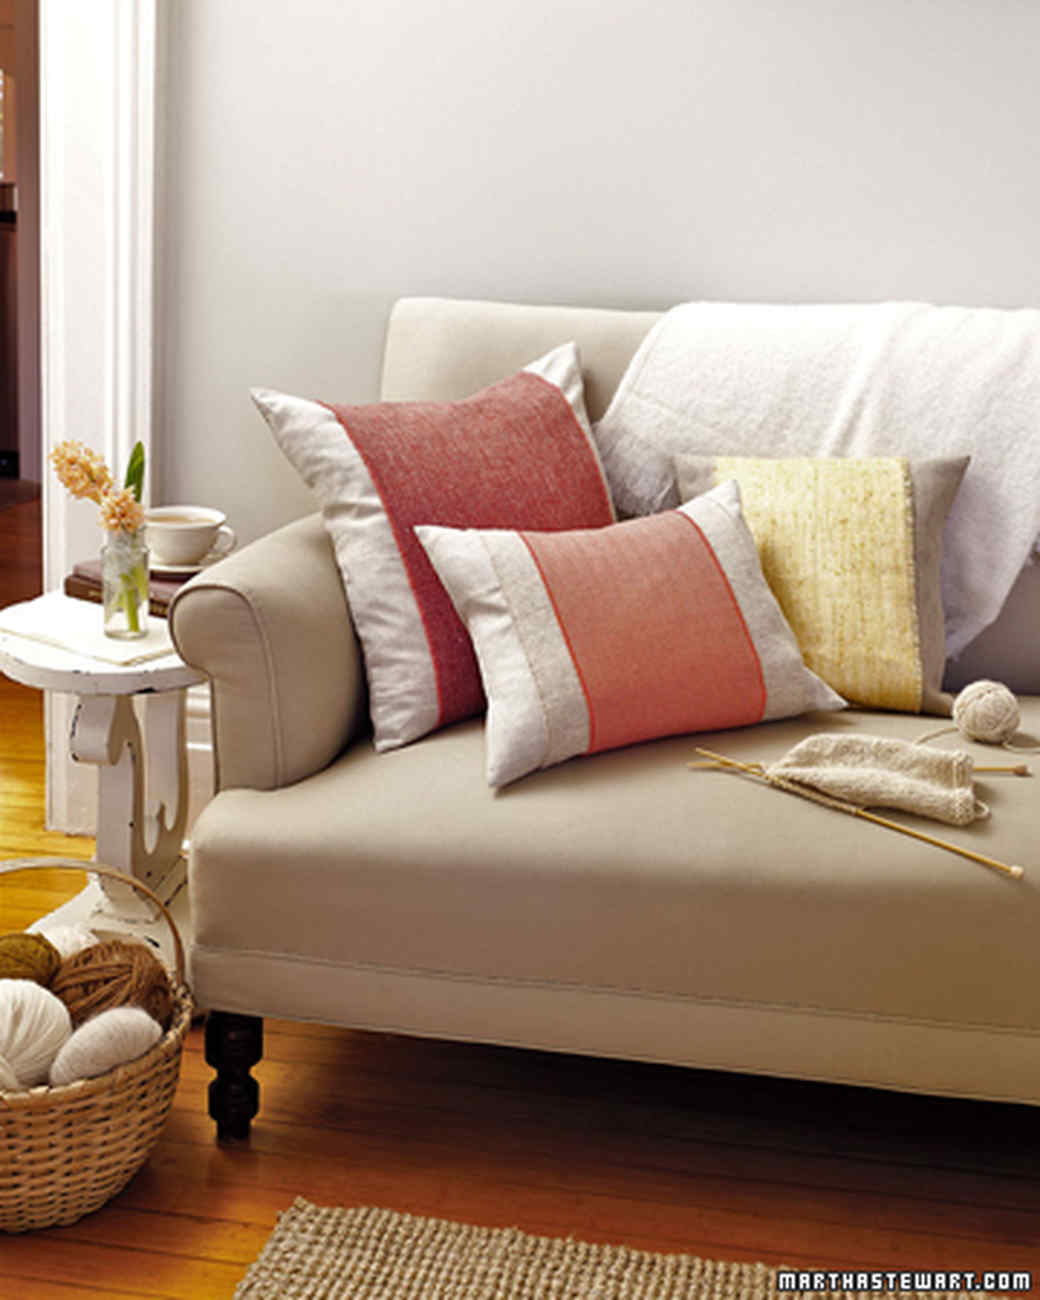 26 pillow projects that are perfectly cozy and comfortable | martha Couch and Pillows